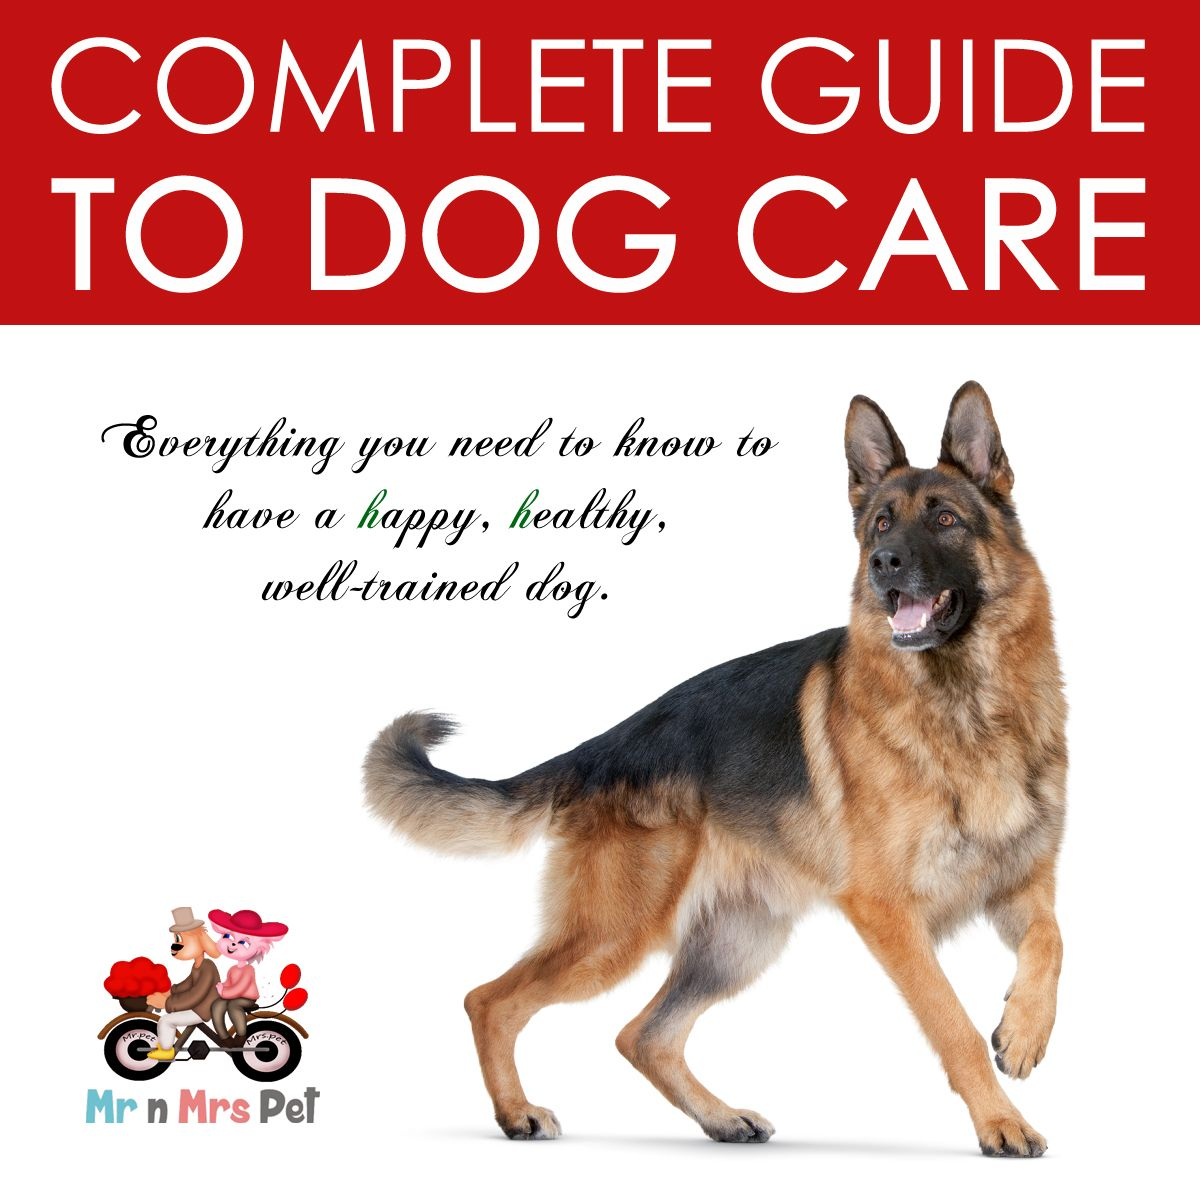 Dog Care Guide Dog Care Pets Dogs